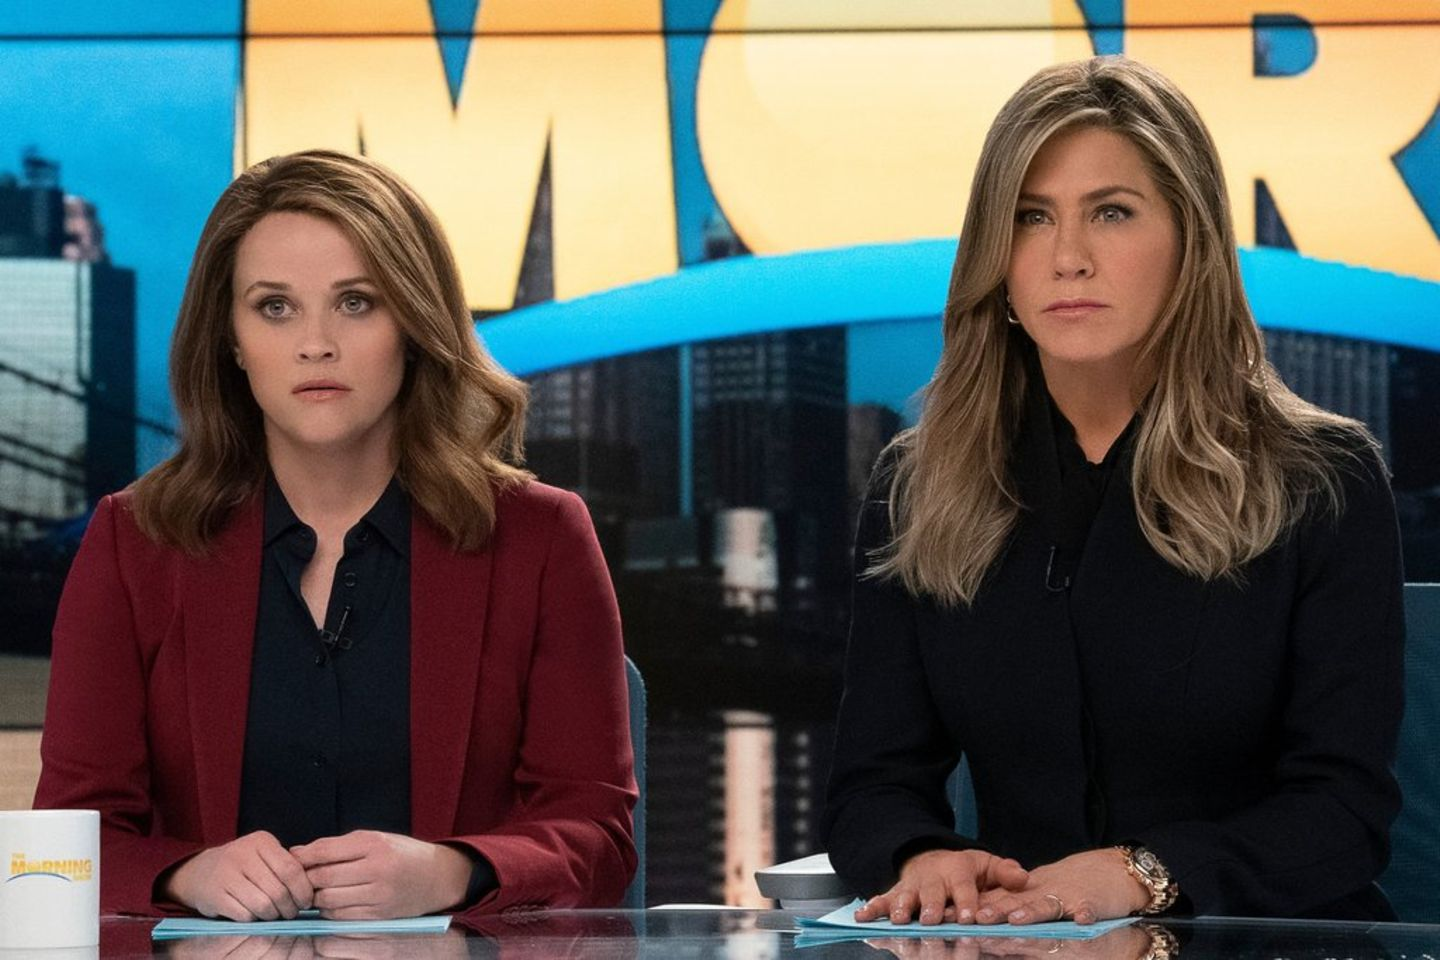 """Bradley (Reese Witherspoon) und Alex (Jennifer Aniston) in """"The Morning Show""""."""